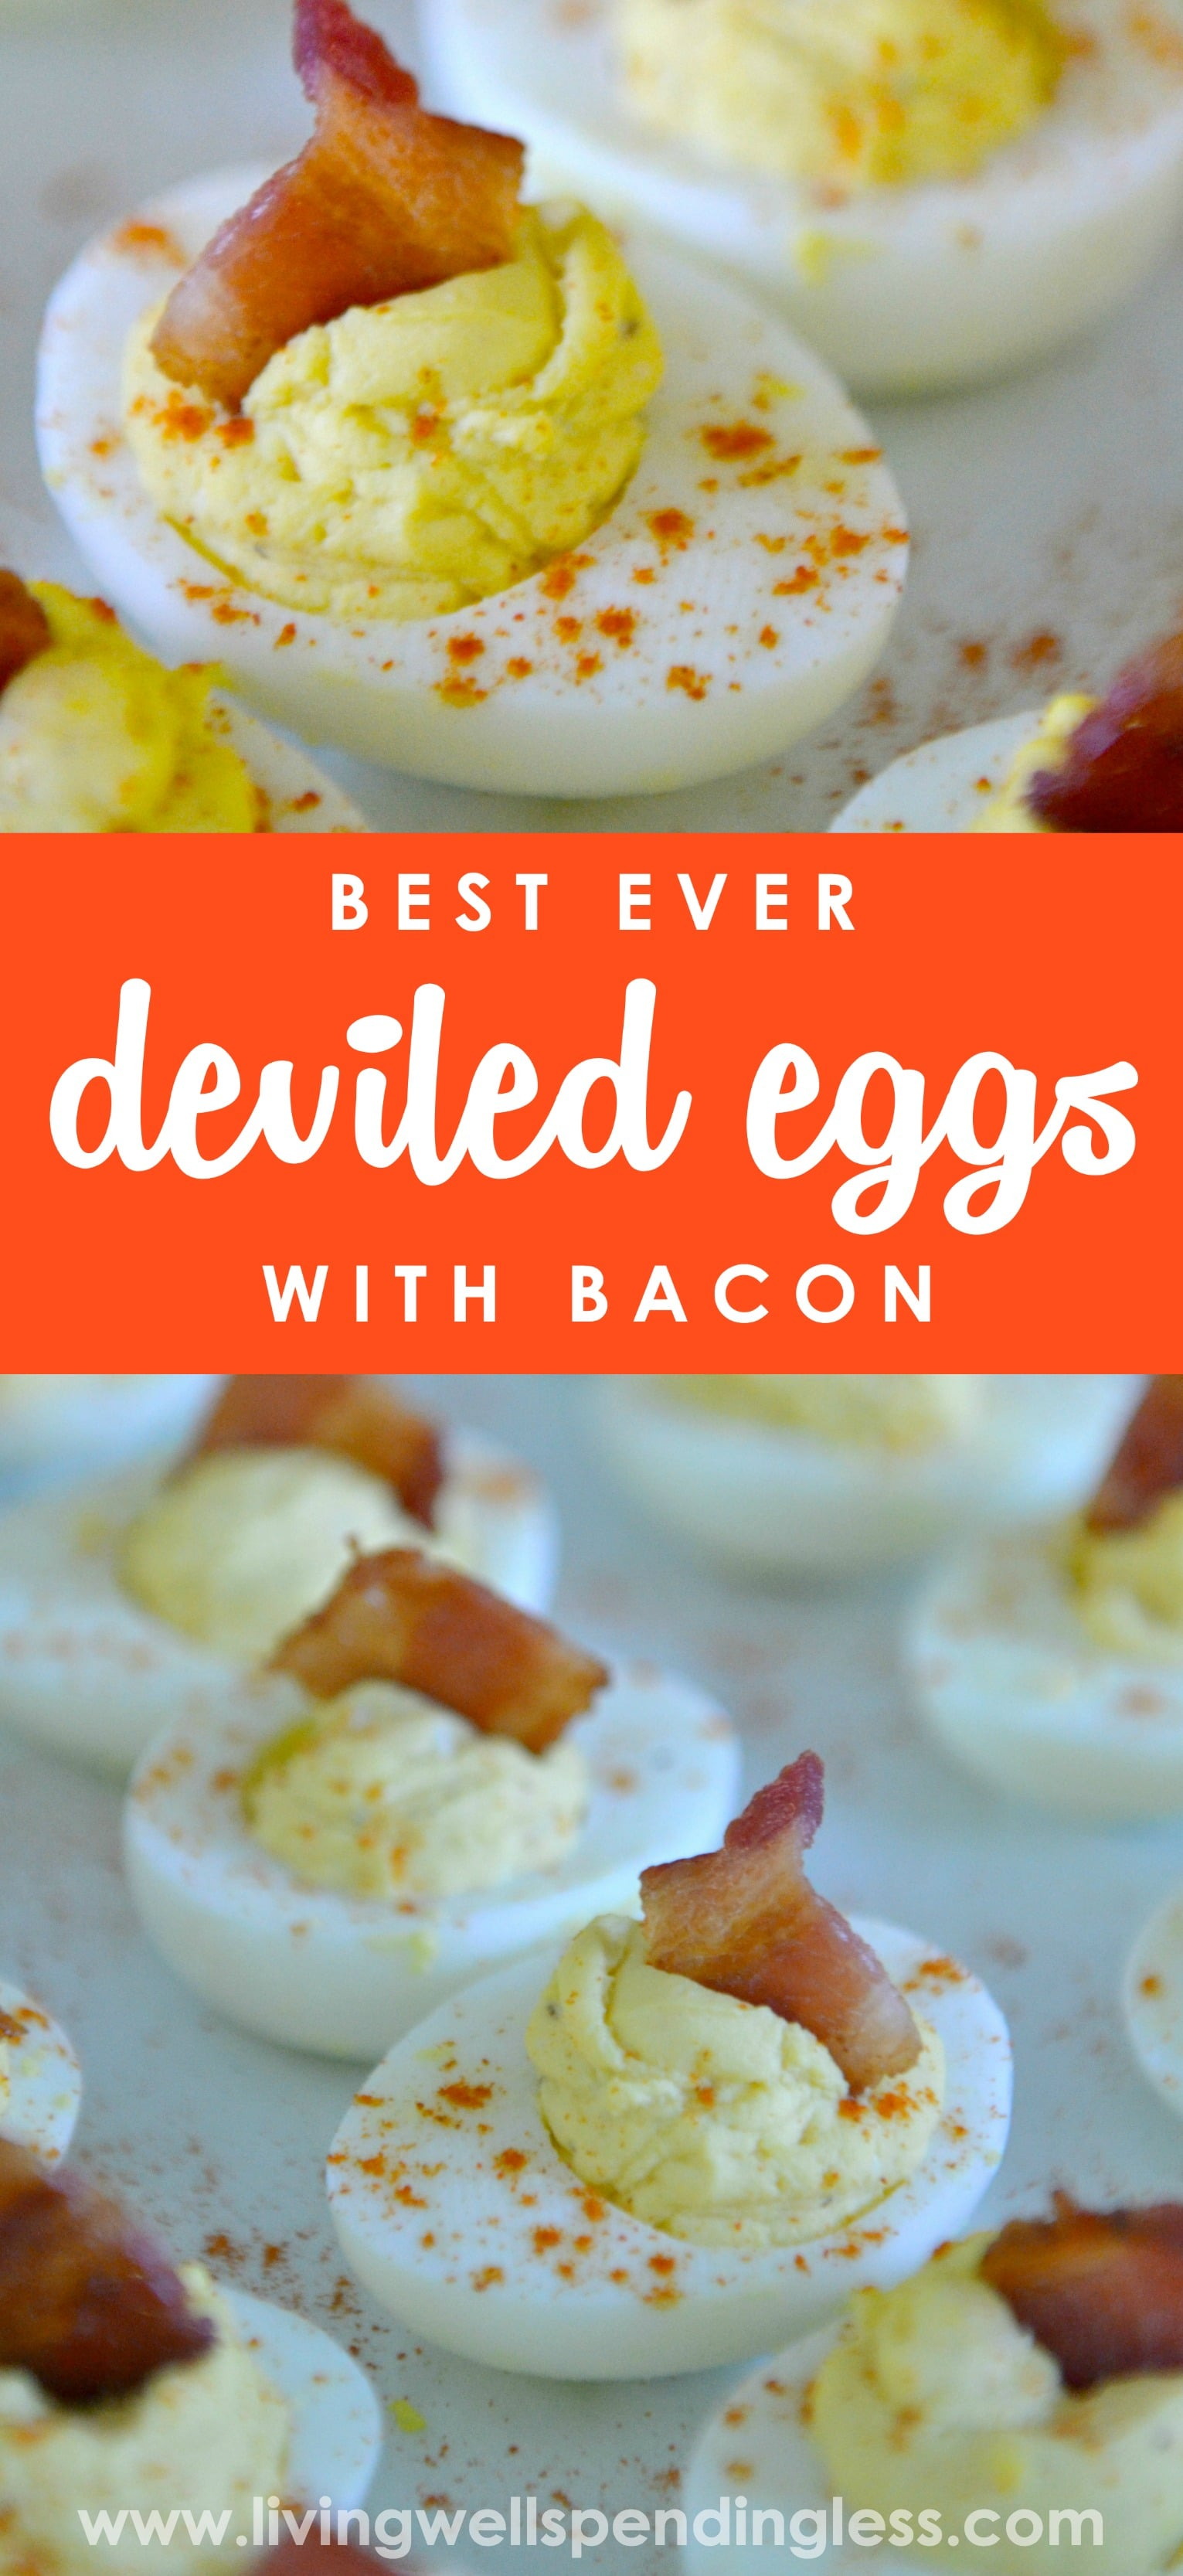 Want to know the secret to making the world's best deviled eggs? Don't miss this super simple, easy-to-follow recipe for perfect deviled eggs with BACON. (Mmmmm.....bacon!)